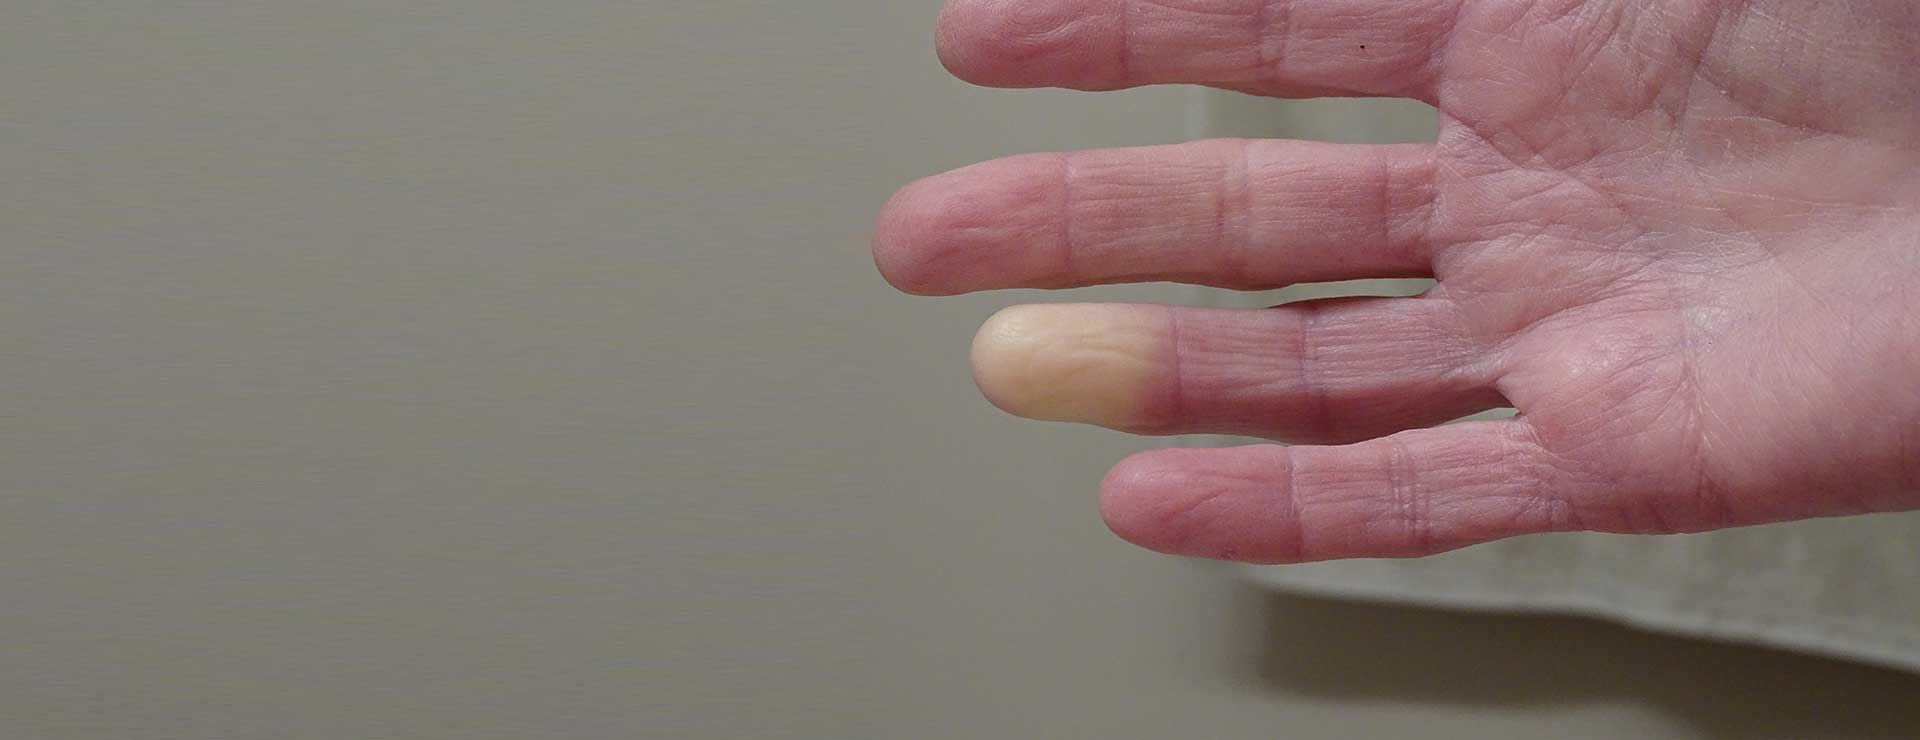 Hand with pale fingertip